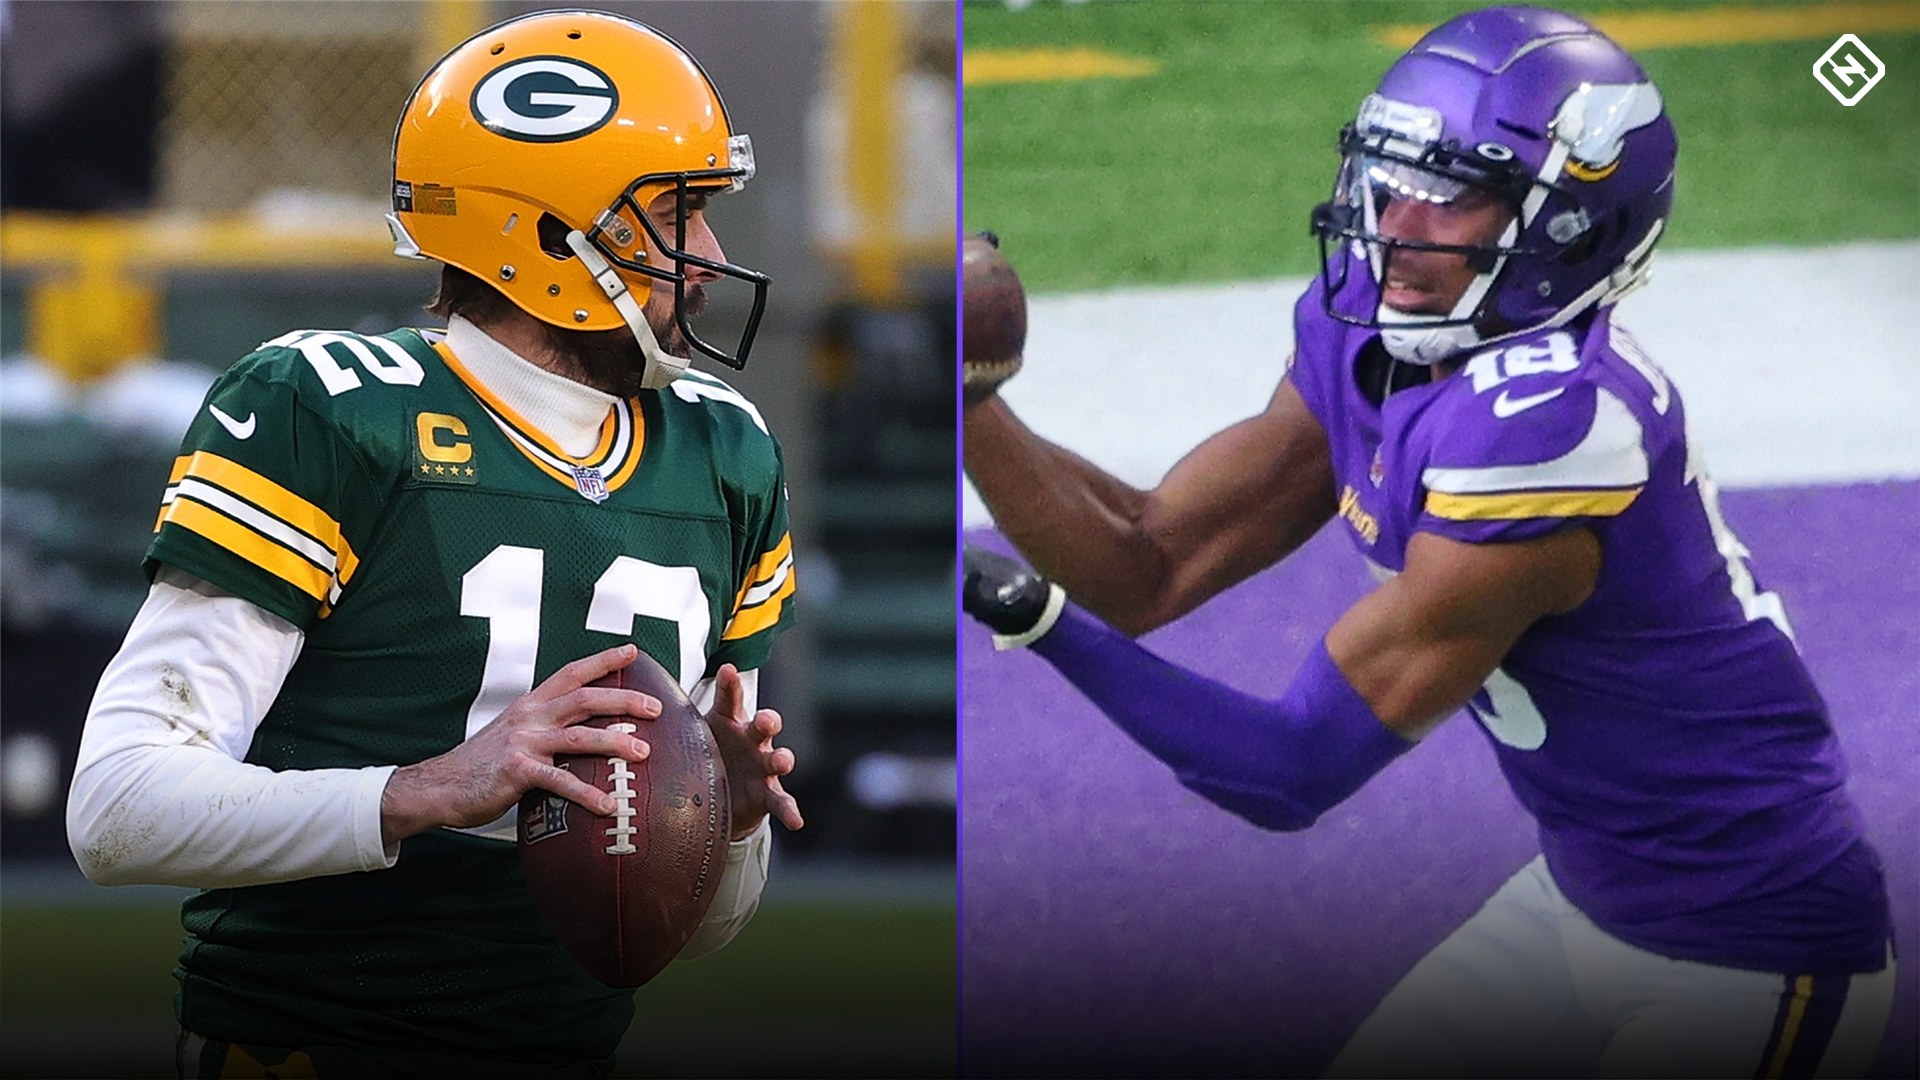 Packers draft rumors: Green Bay tried to trade for Justin Jefferson in 2020 to get help from wide receiver Aaron Rodgers